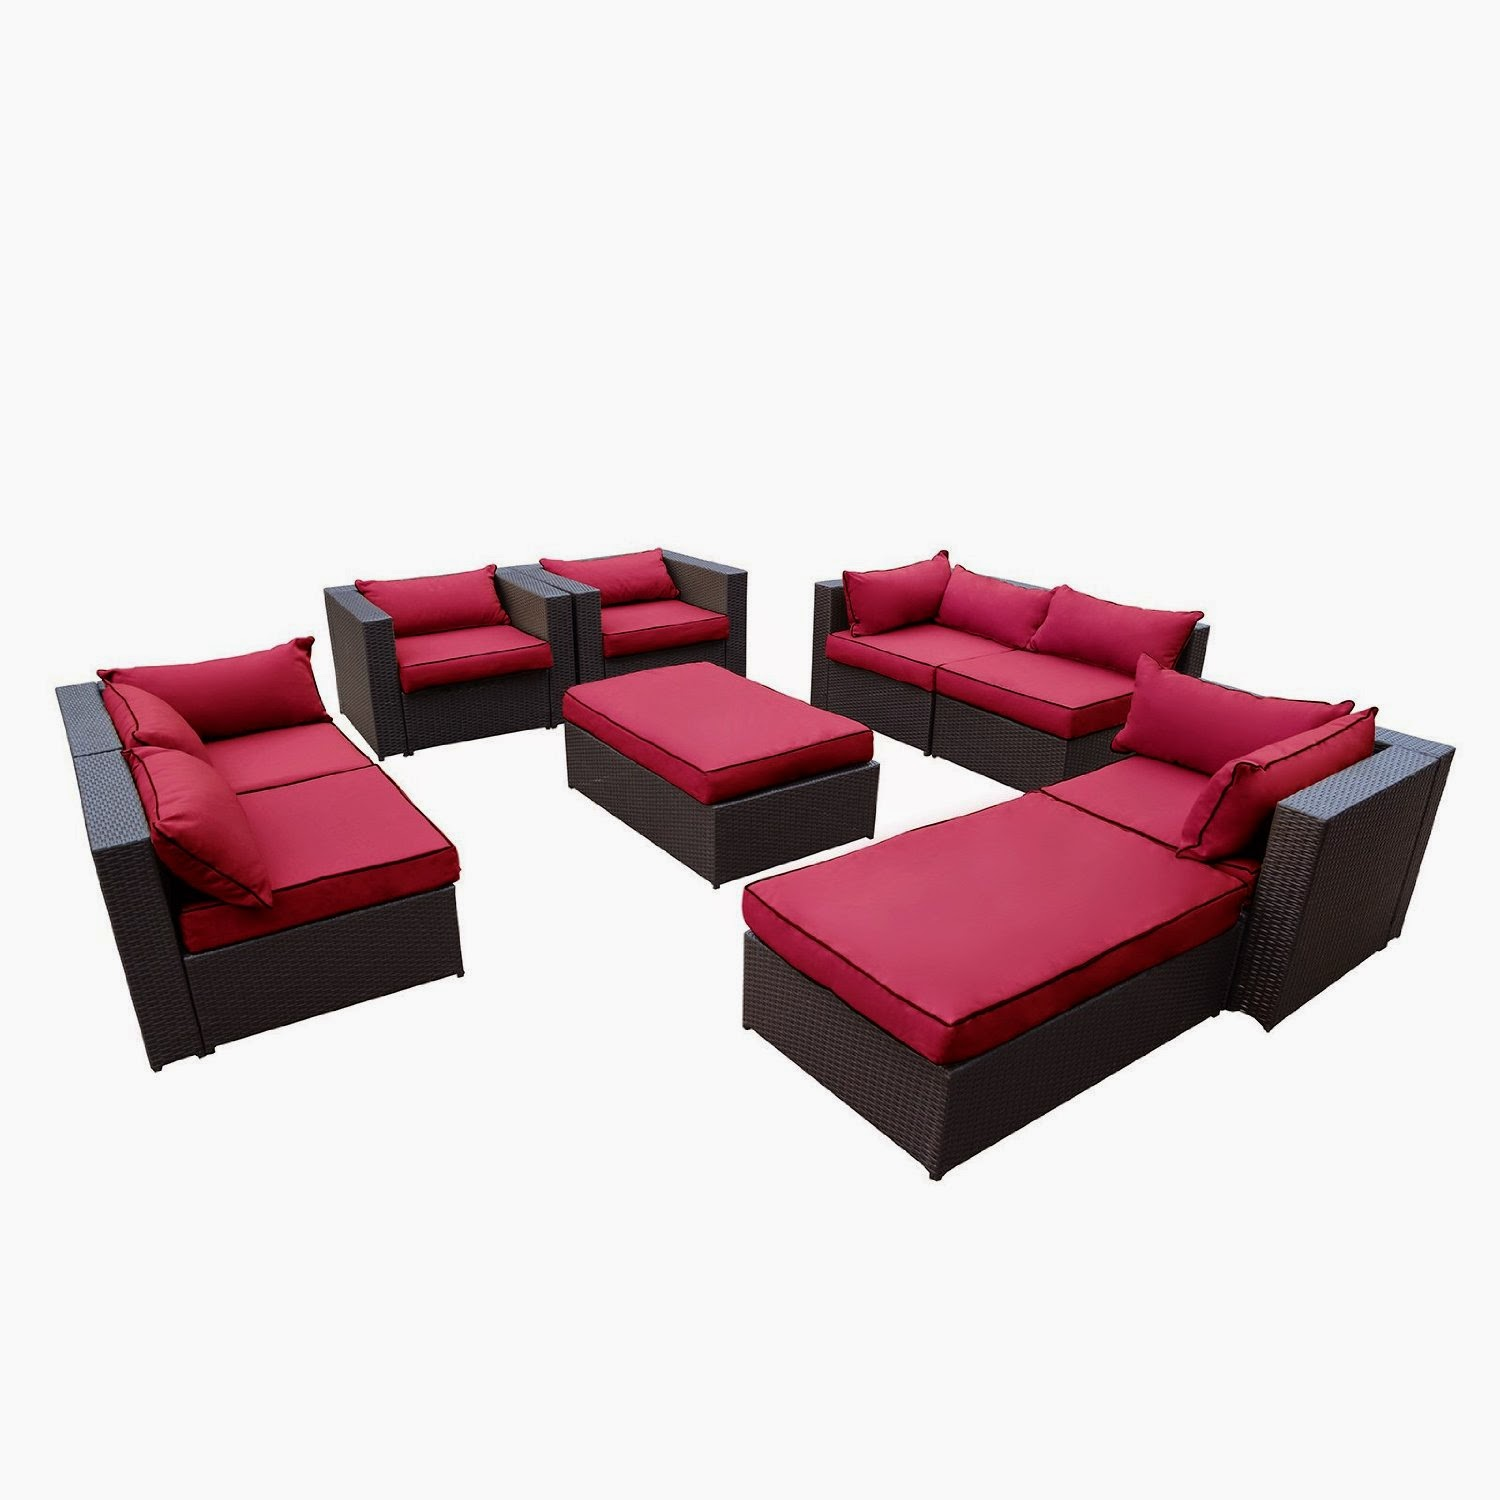 Outdoor patio rattan wicker furniture sectional sofa for Outdoor furniture wicker